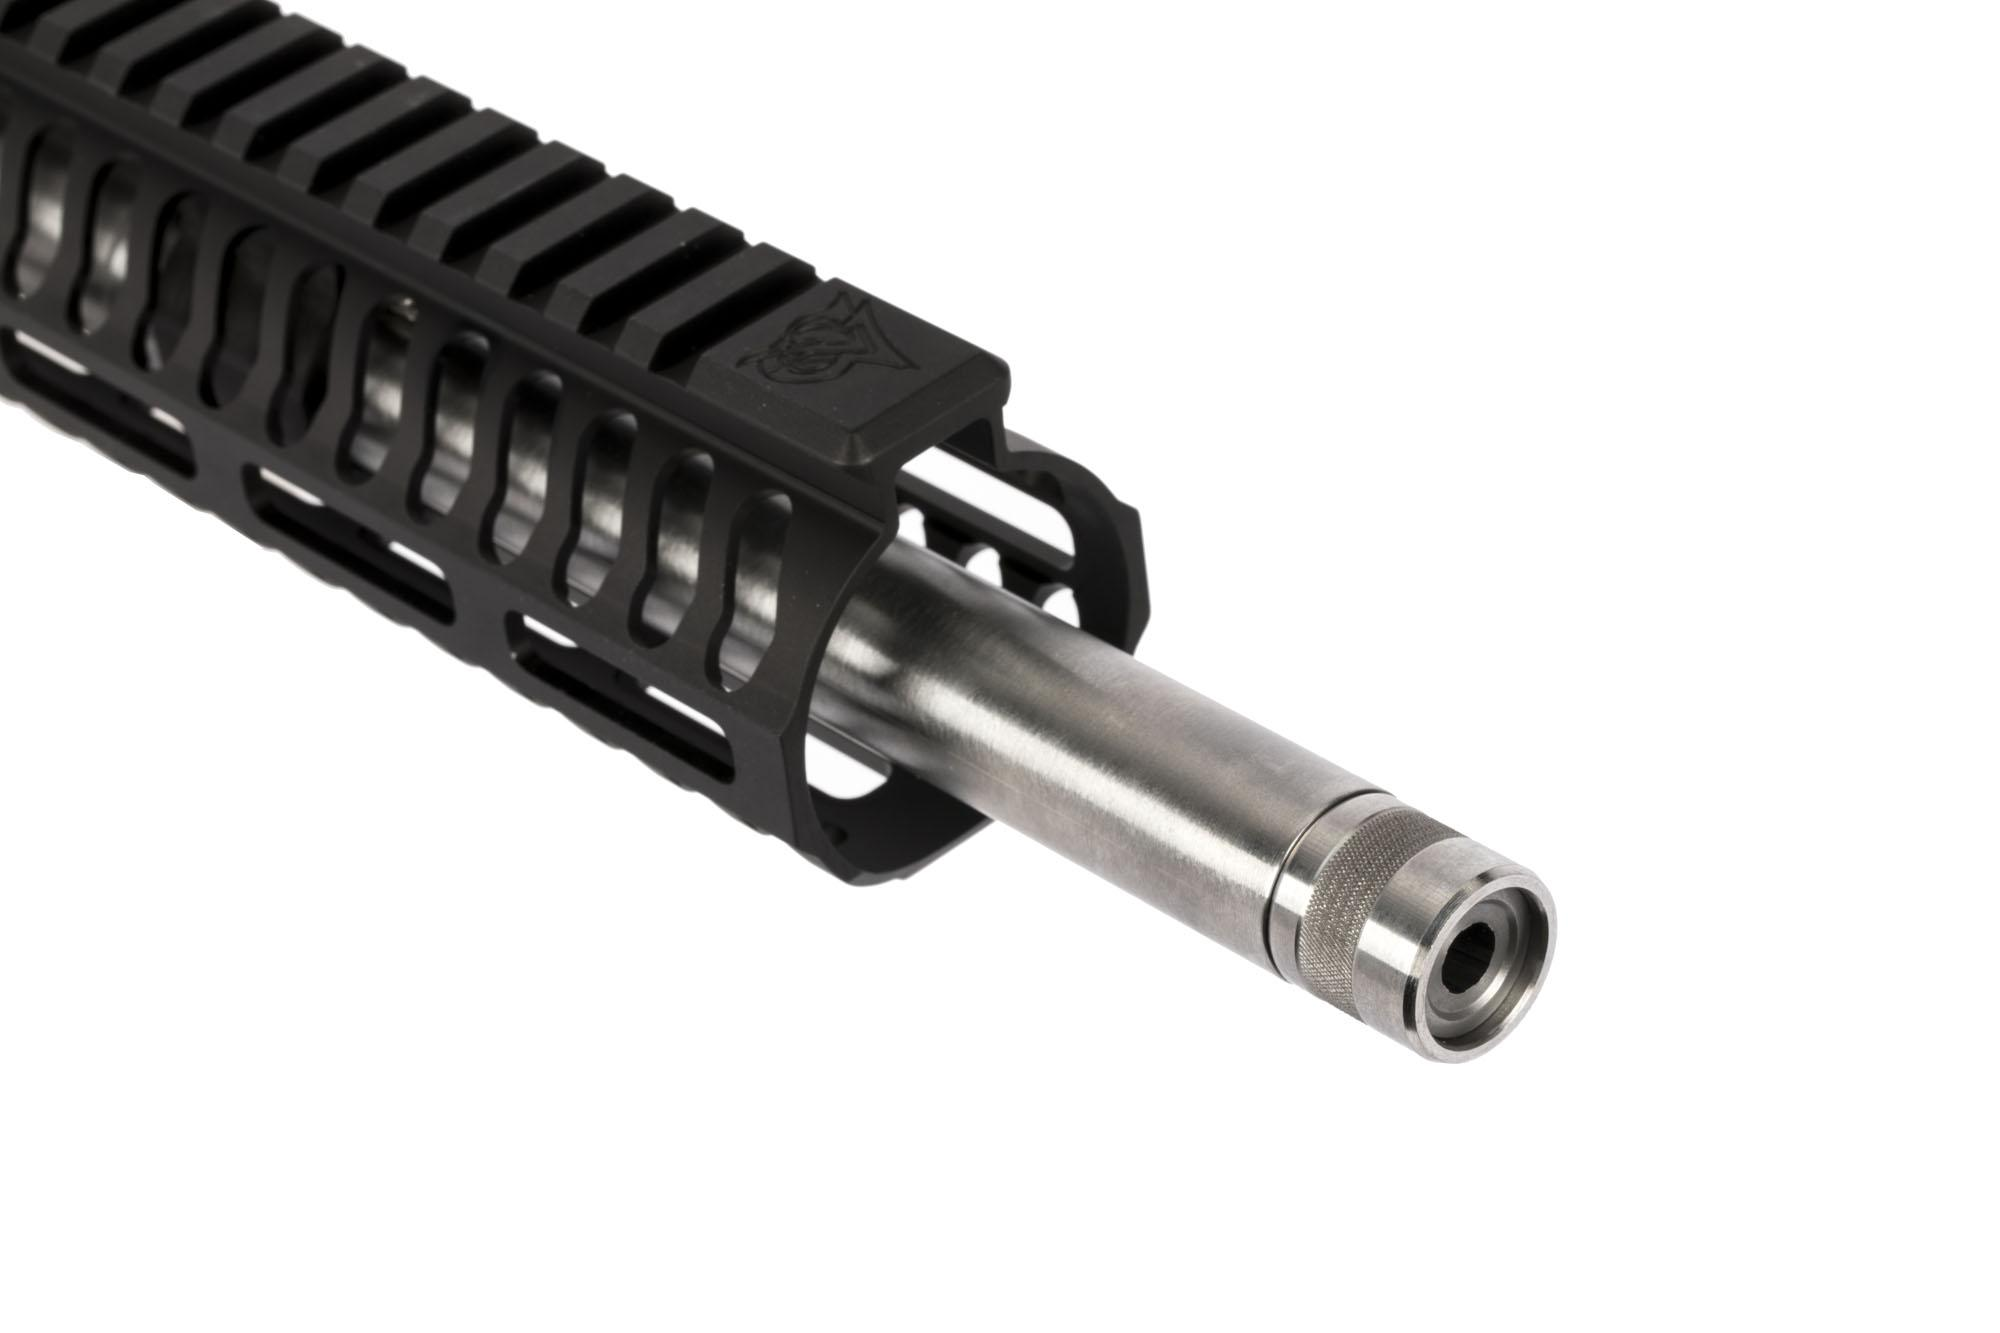 ODIN Works 18in 6.5 Grendel comes with a M-LOK handguard with a full length picatinny top rail